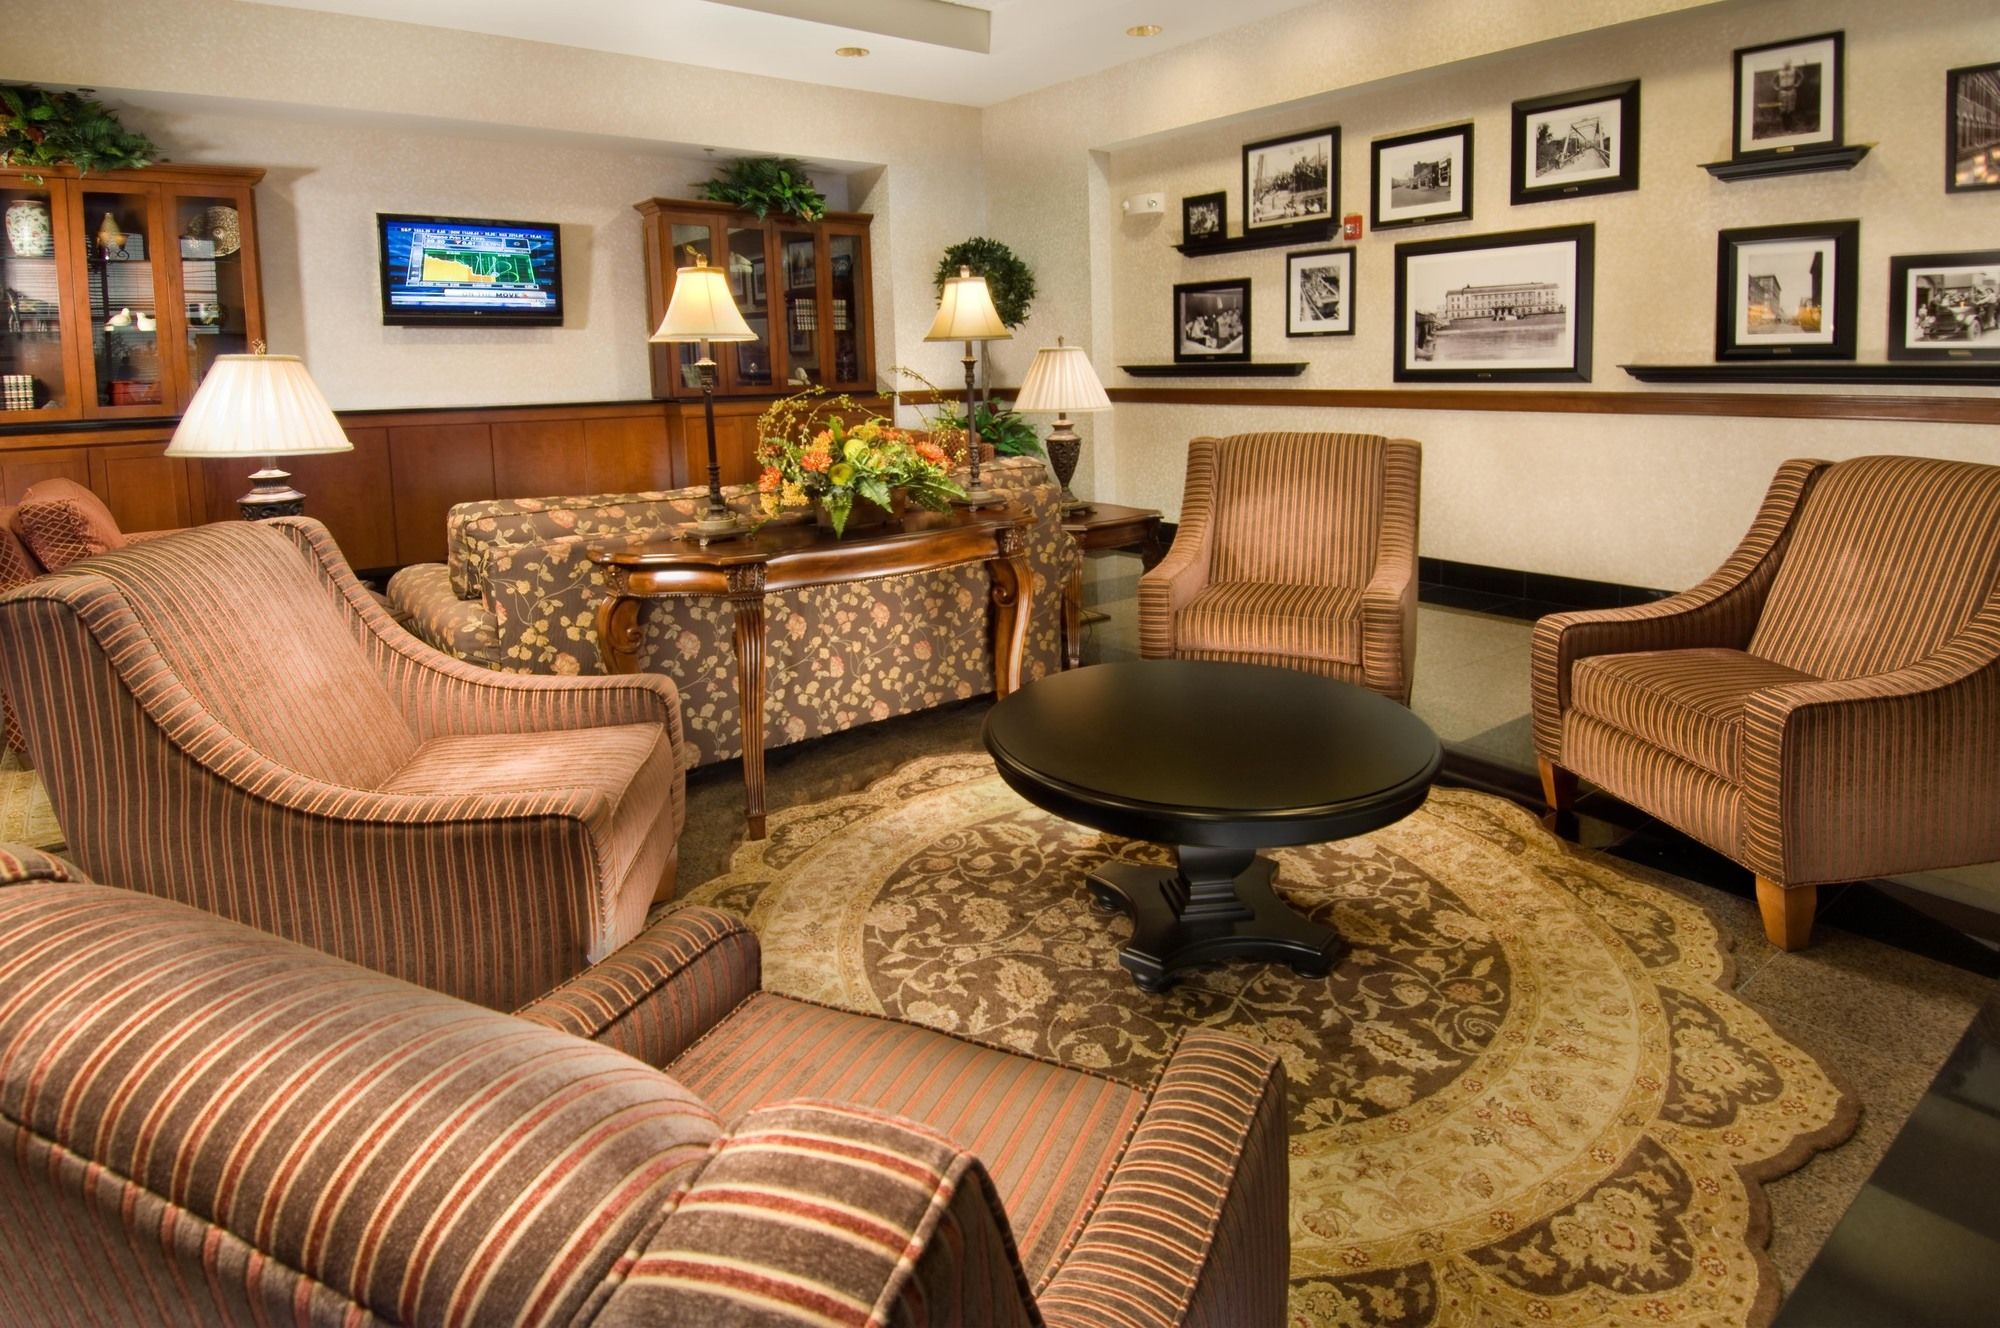 West Des Moines Hotel Coupons for West Des Moines, Iowa ...